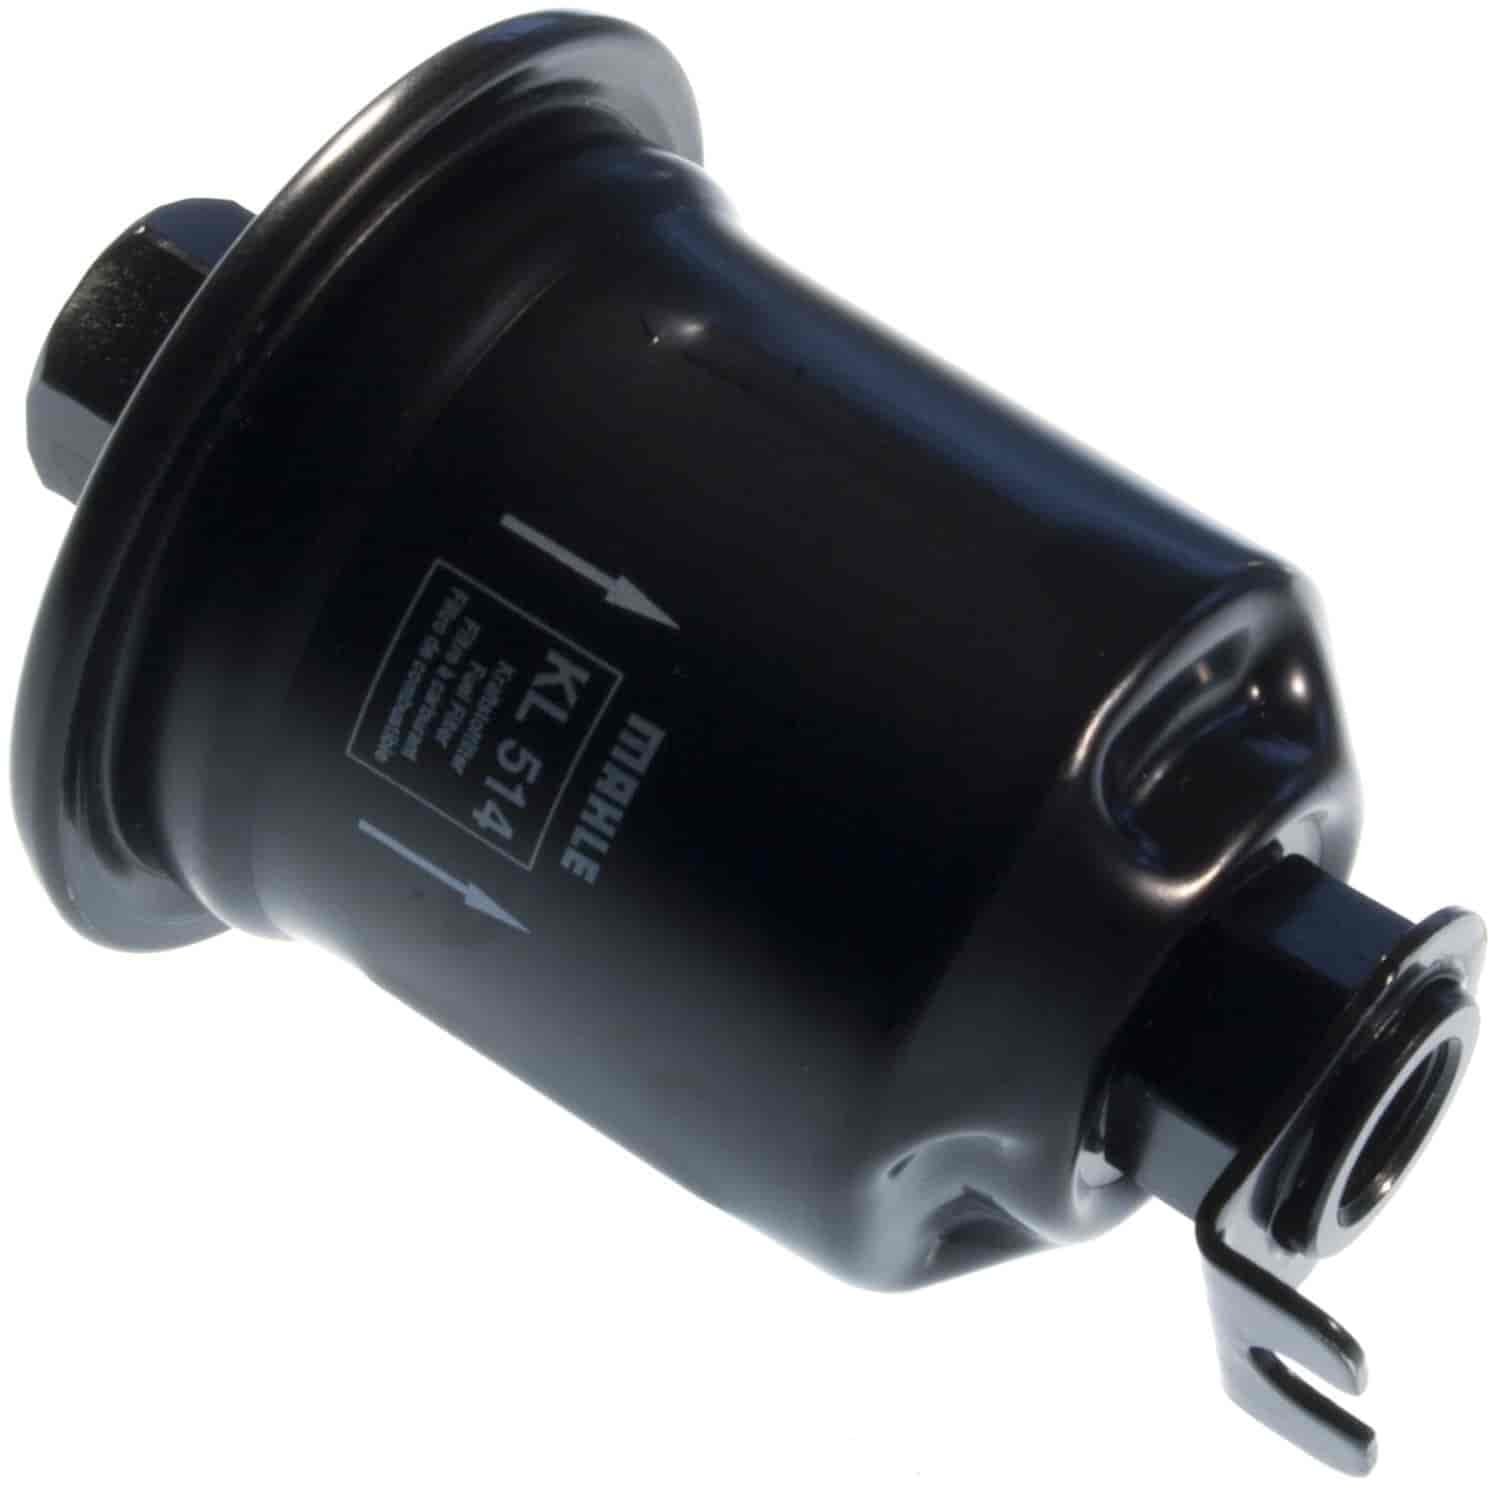 Clevite MAHLE Mahle Fuel Filter Toyota Sienna Supra 3.0L 93-04